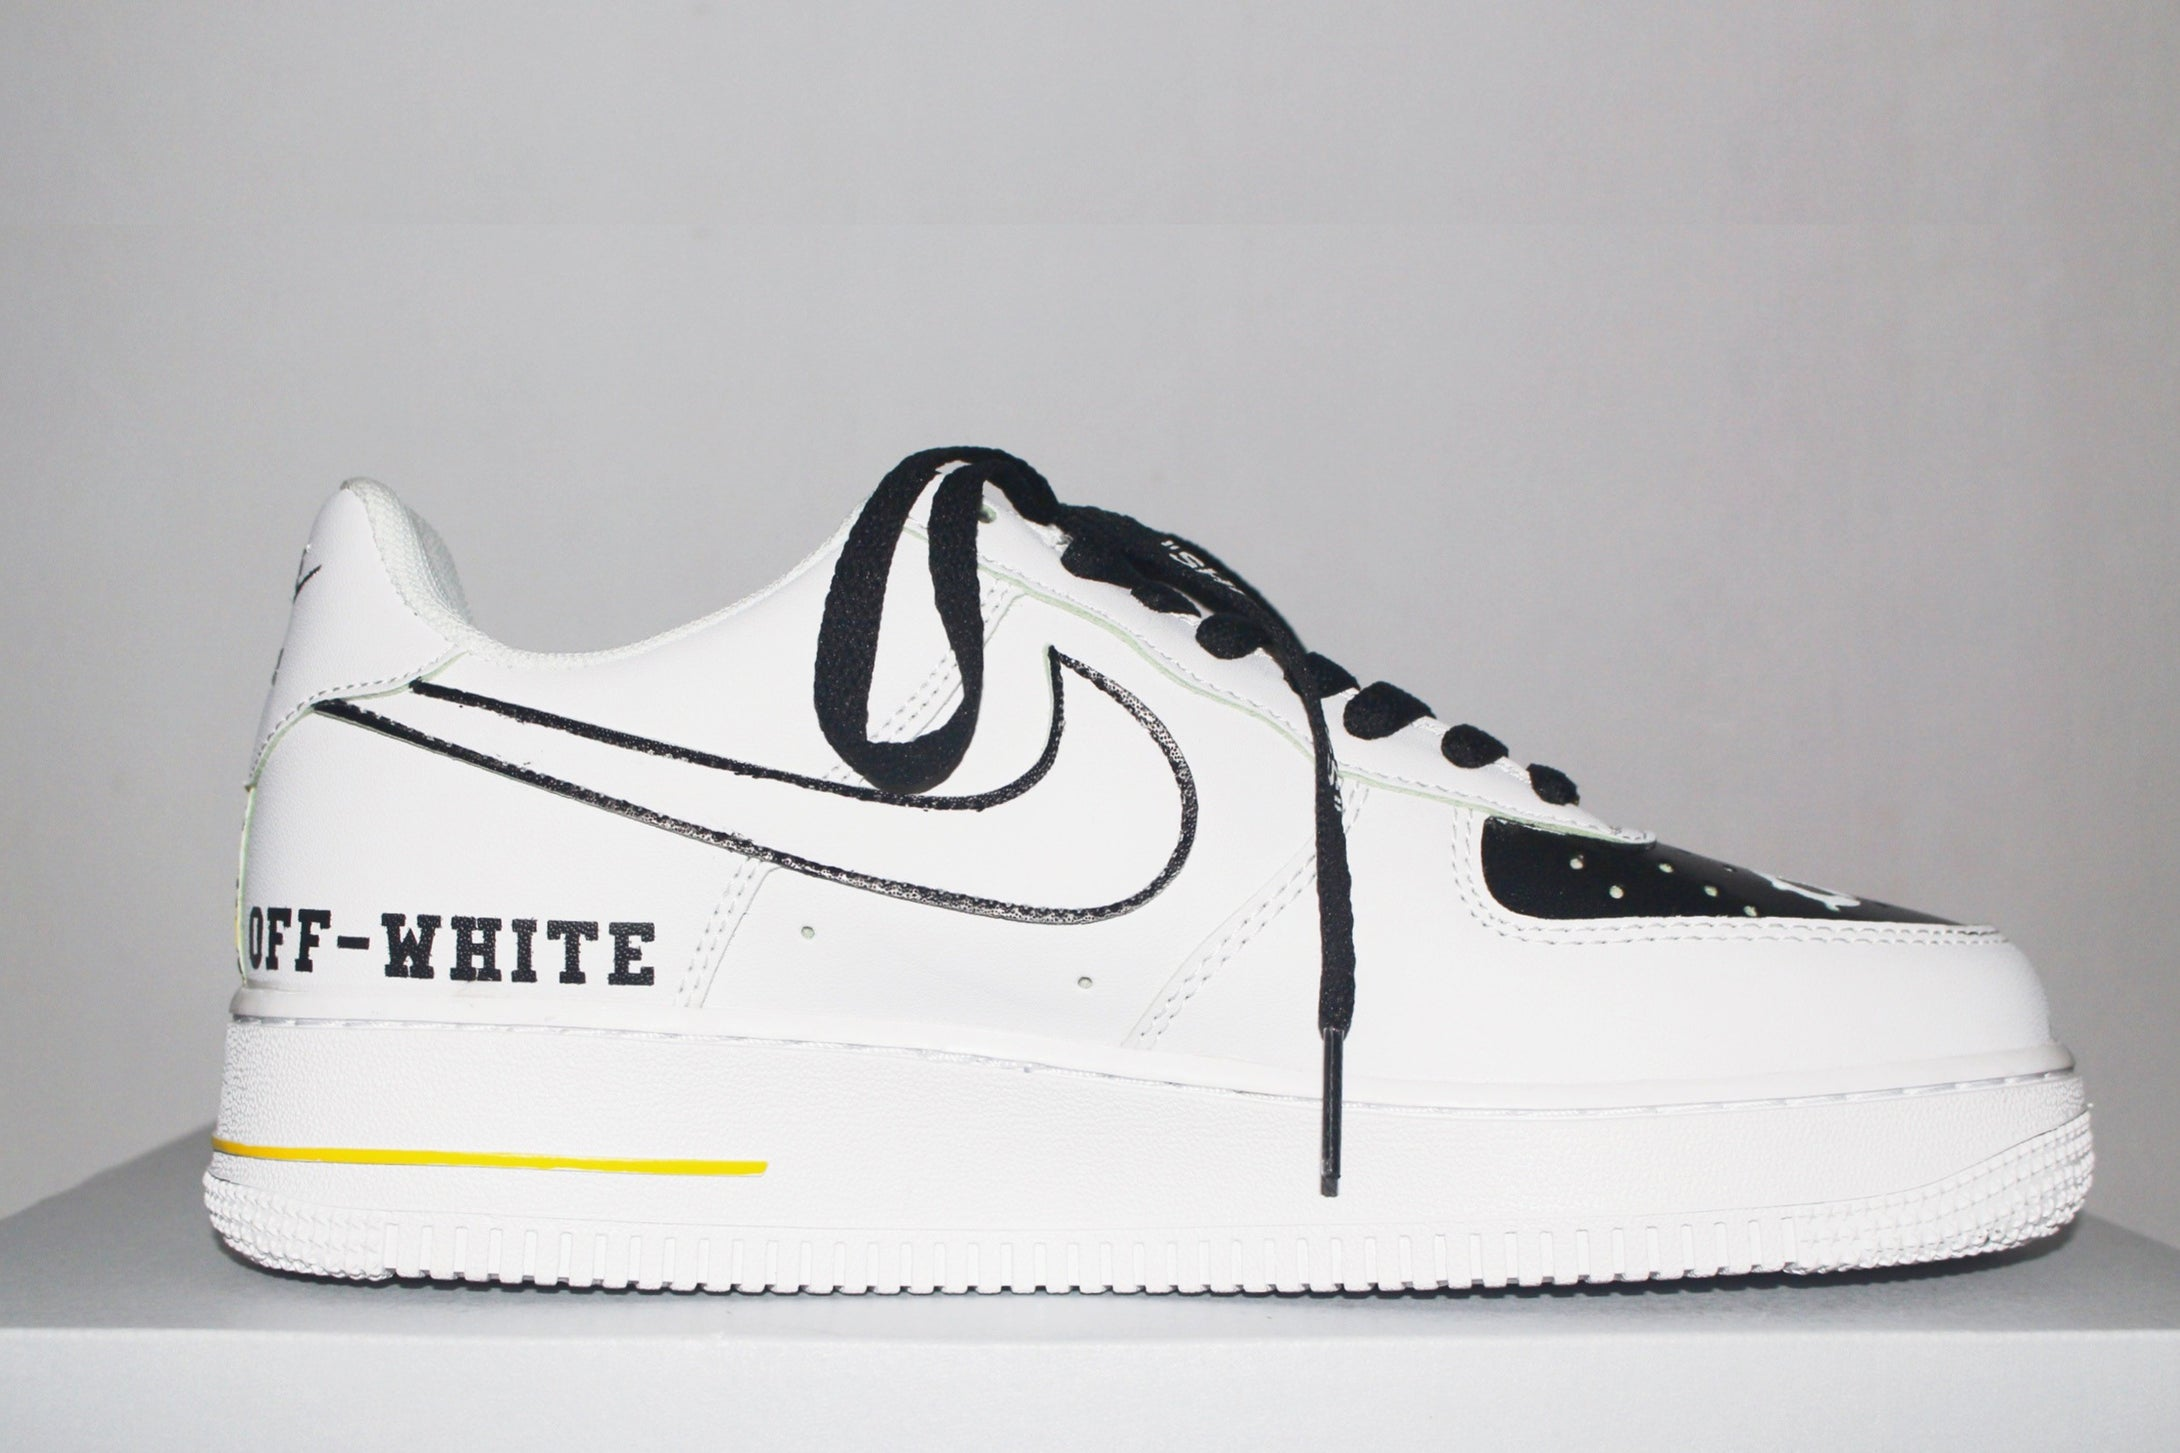 Off-White Air Force 1